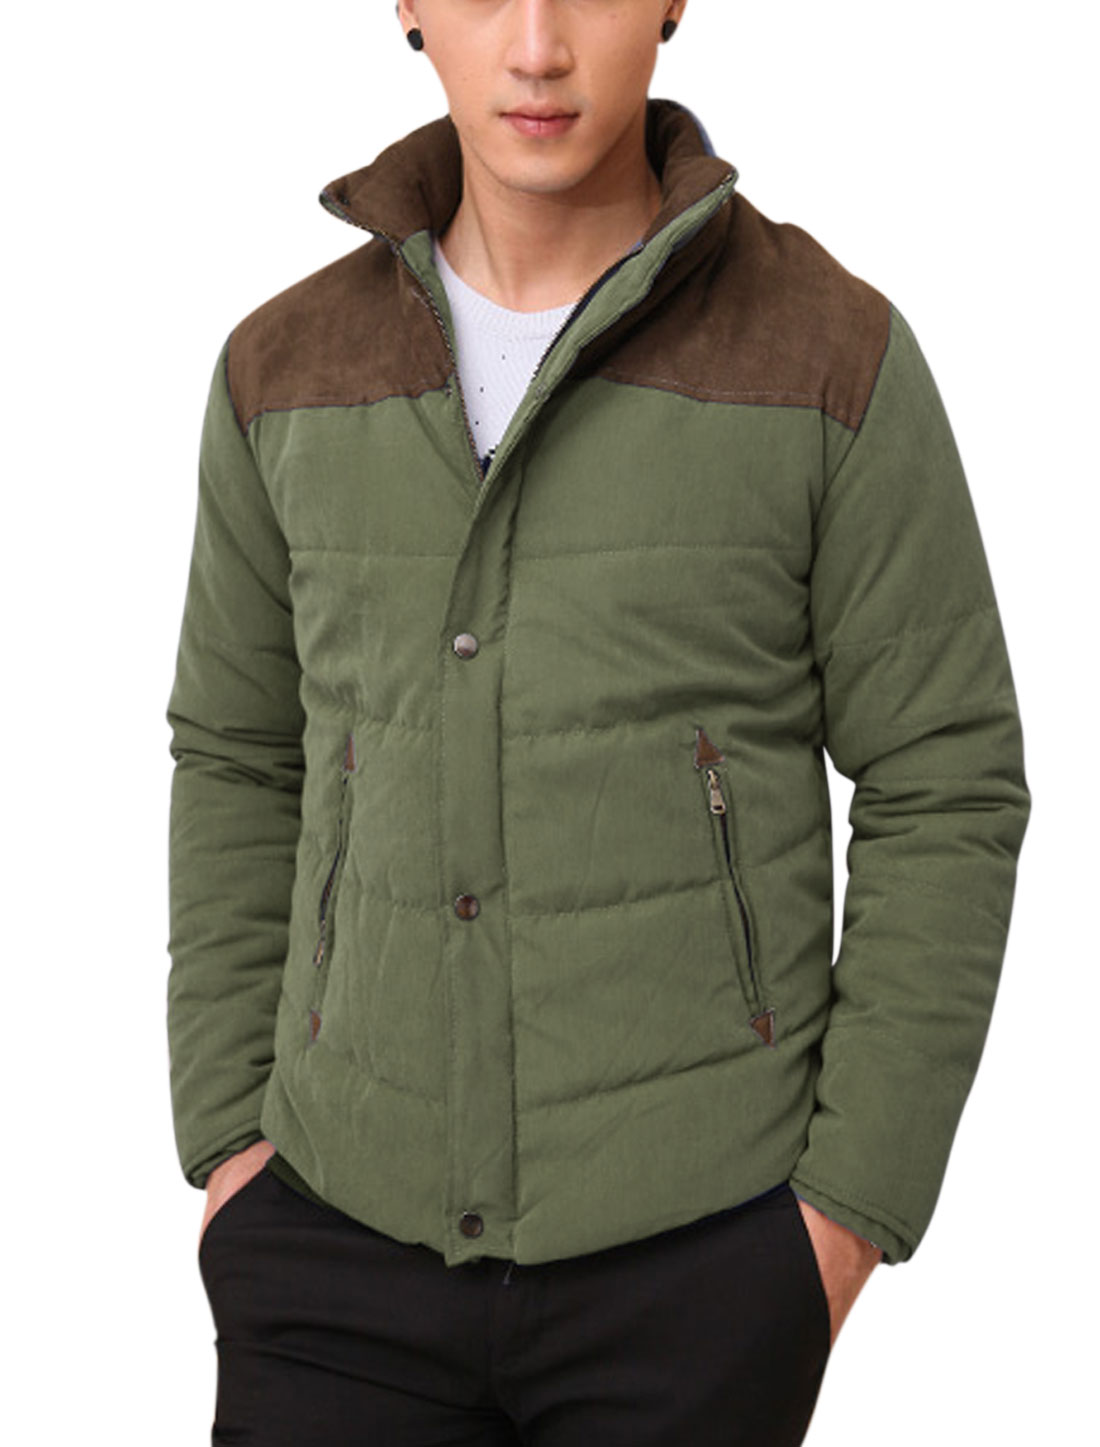 Men Full Zipper Two Tone Faux Suede Panel Padded Jacket Army Green M